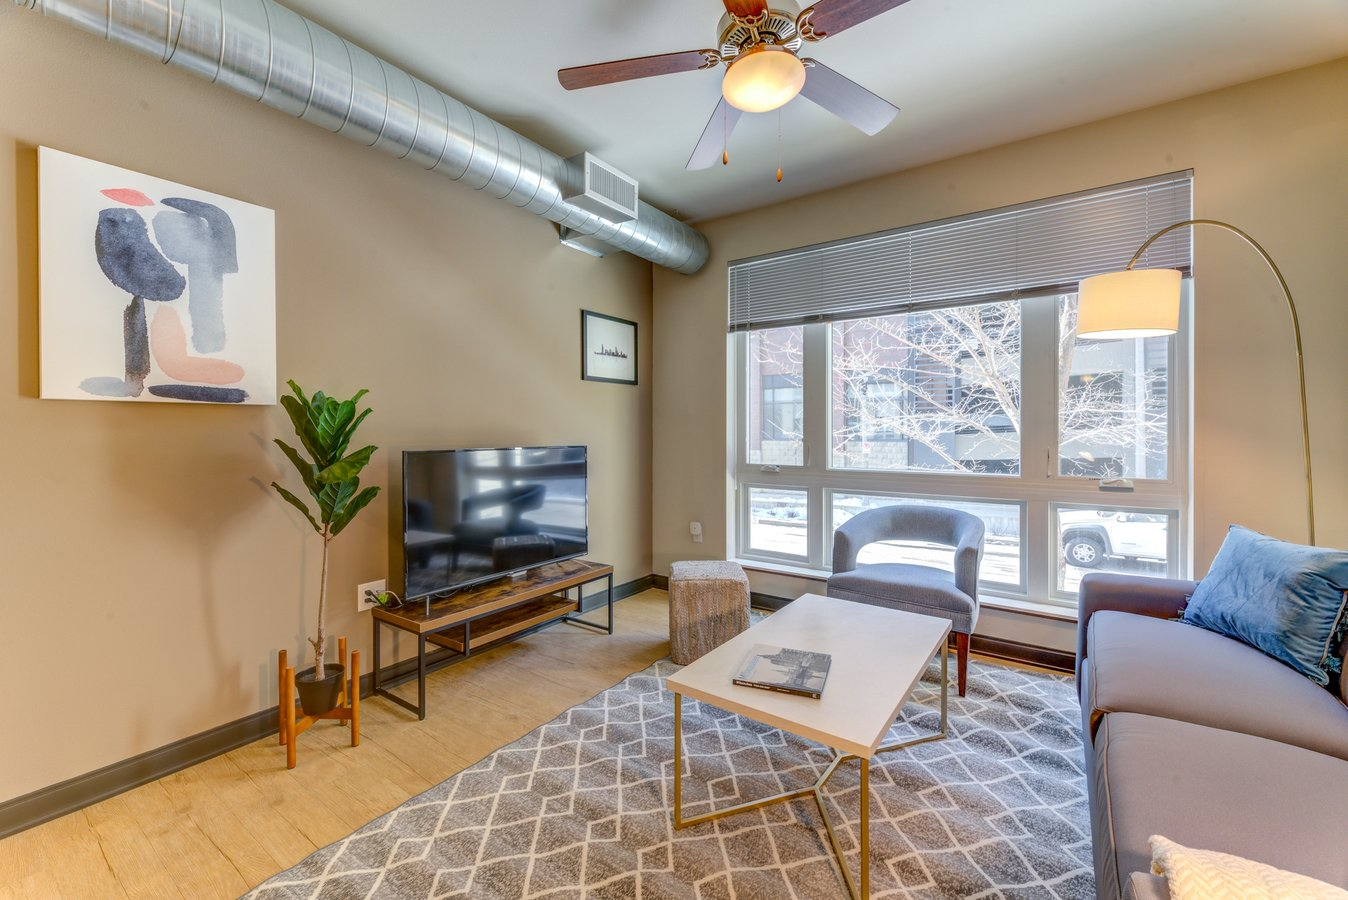 1 Bedroom 1 Bathroom Apartment for rent at Kasa Milwaukee Downtown Furnished Apartments in Milwaukee, WI